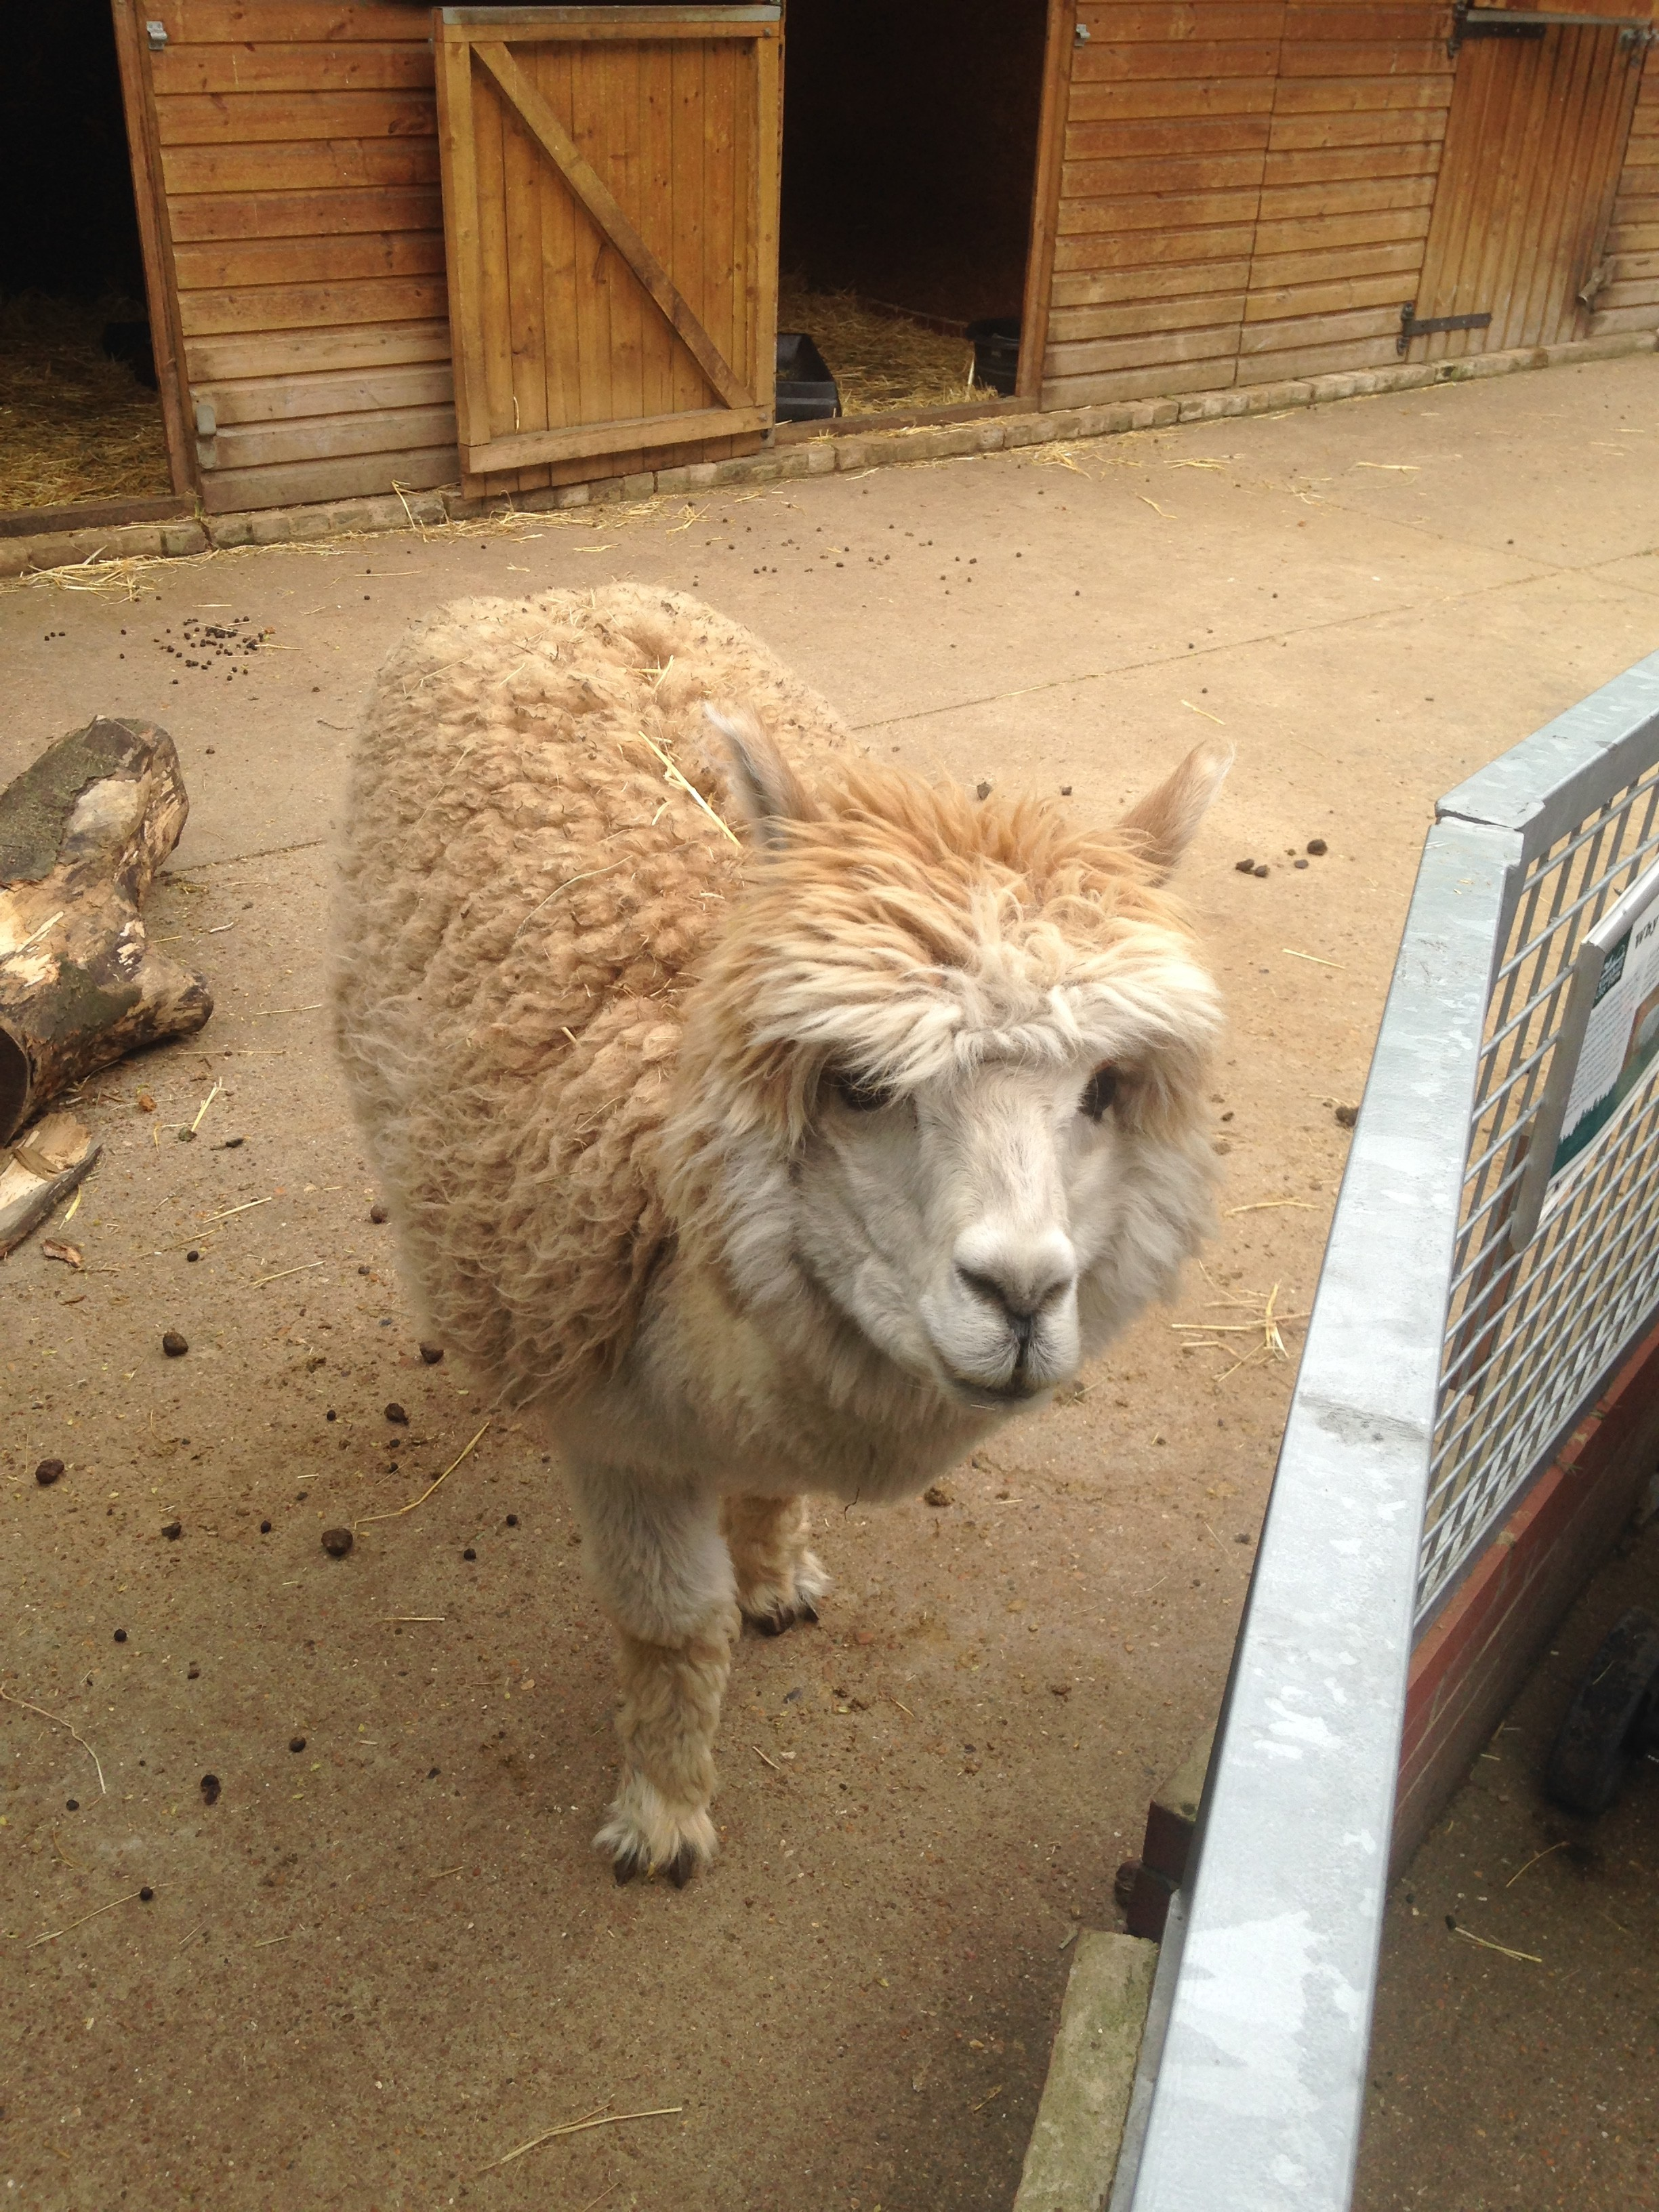 Lllama at Vauxhall City Farm